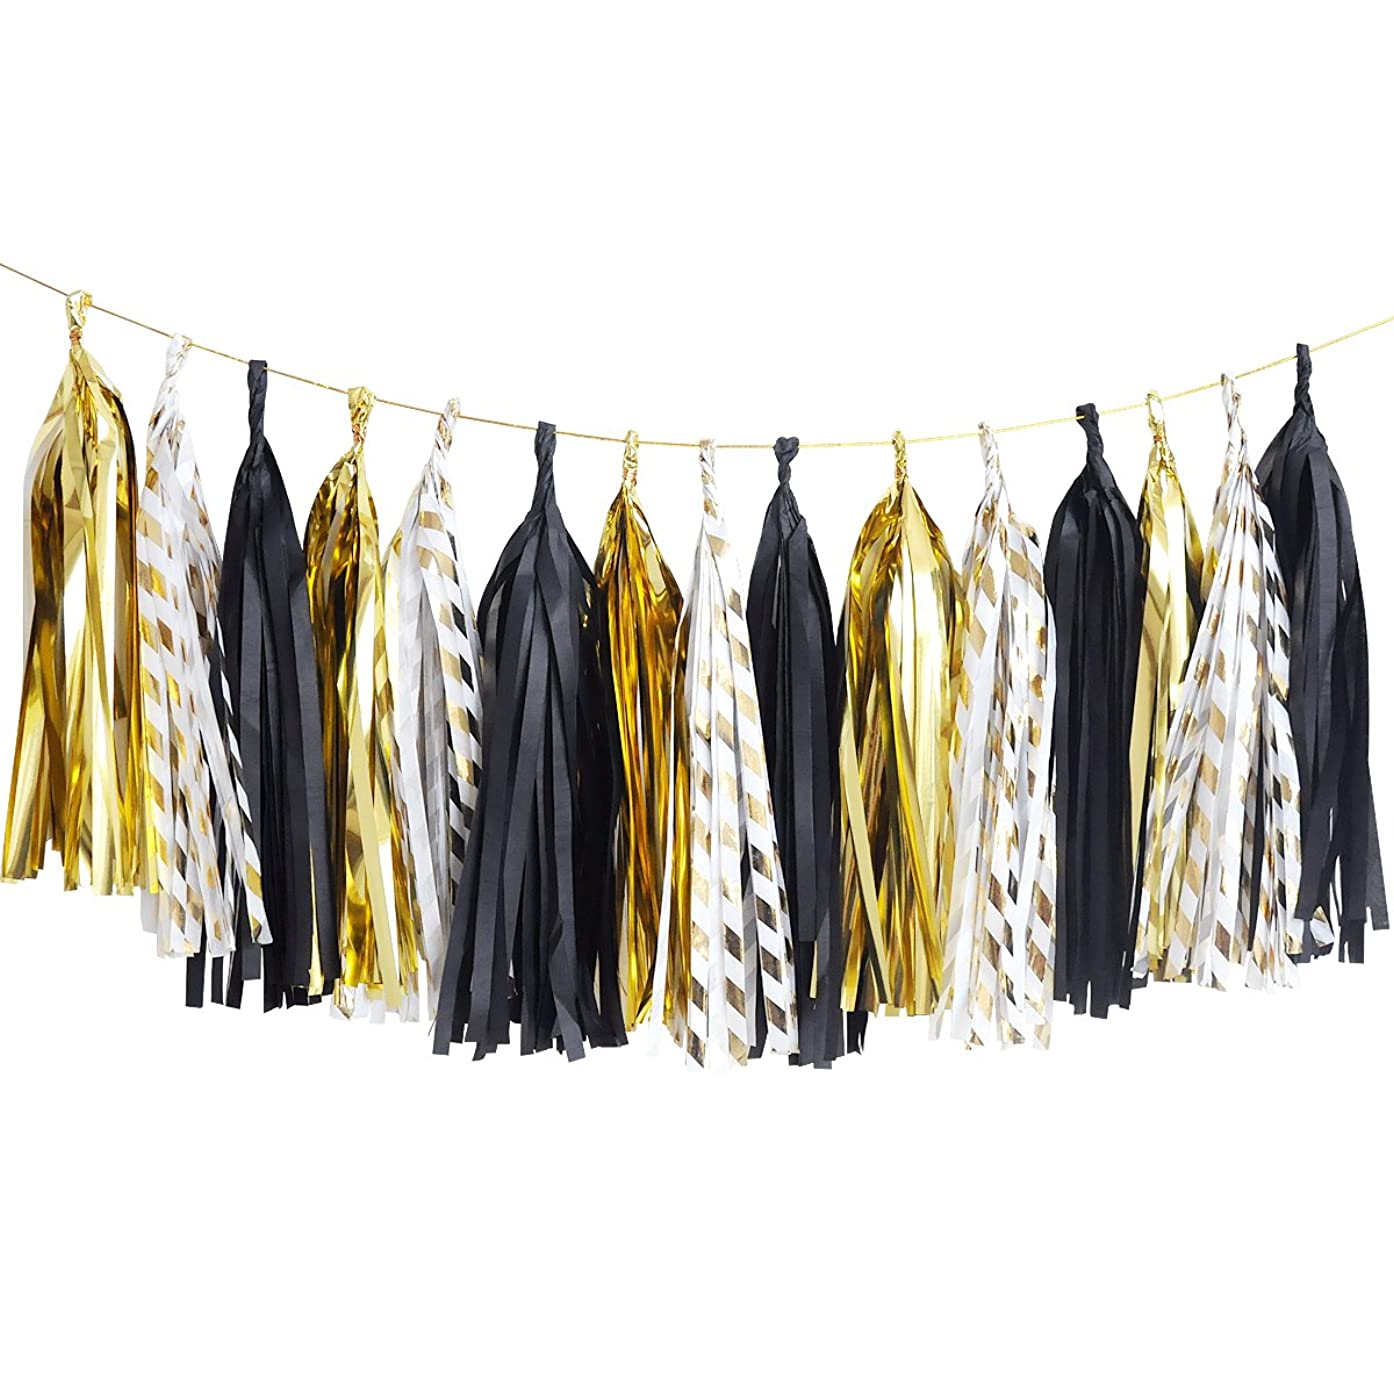 NICROLANDEE Black and Gold Tissue Paper Tassel Gold Foil Stripe Garland Tassel for Anniversary Party Decoration Graduation Wedding Bridal Shower Birthday Party Decor 15 Pcs Per Package